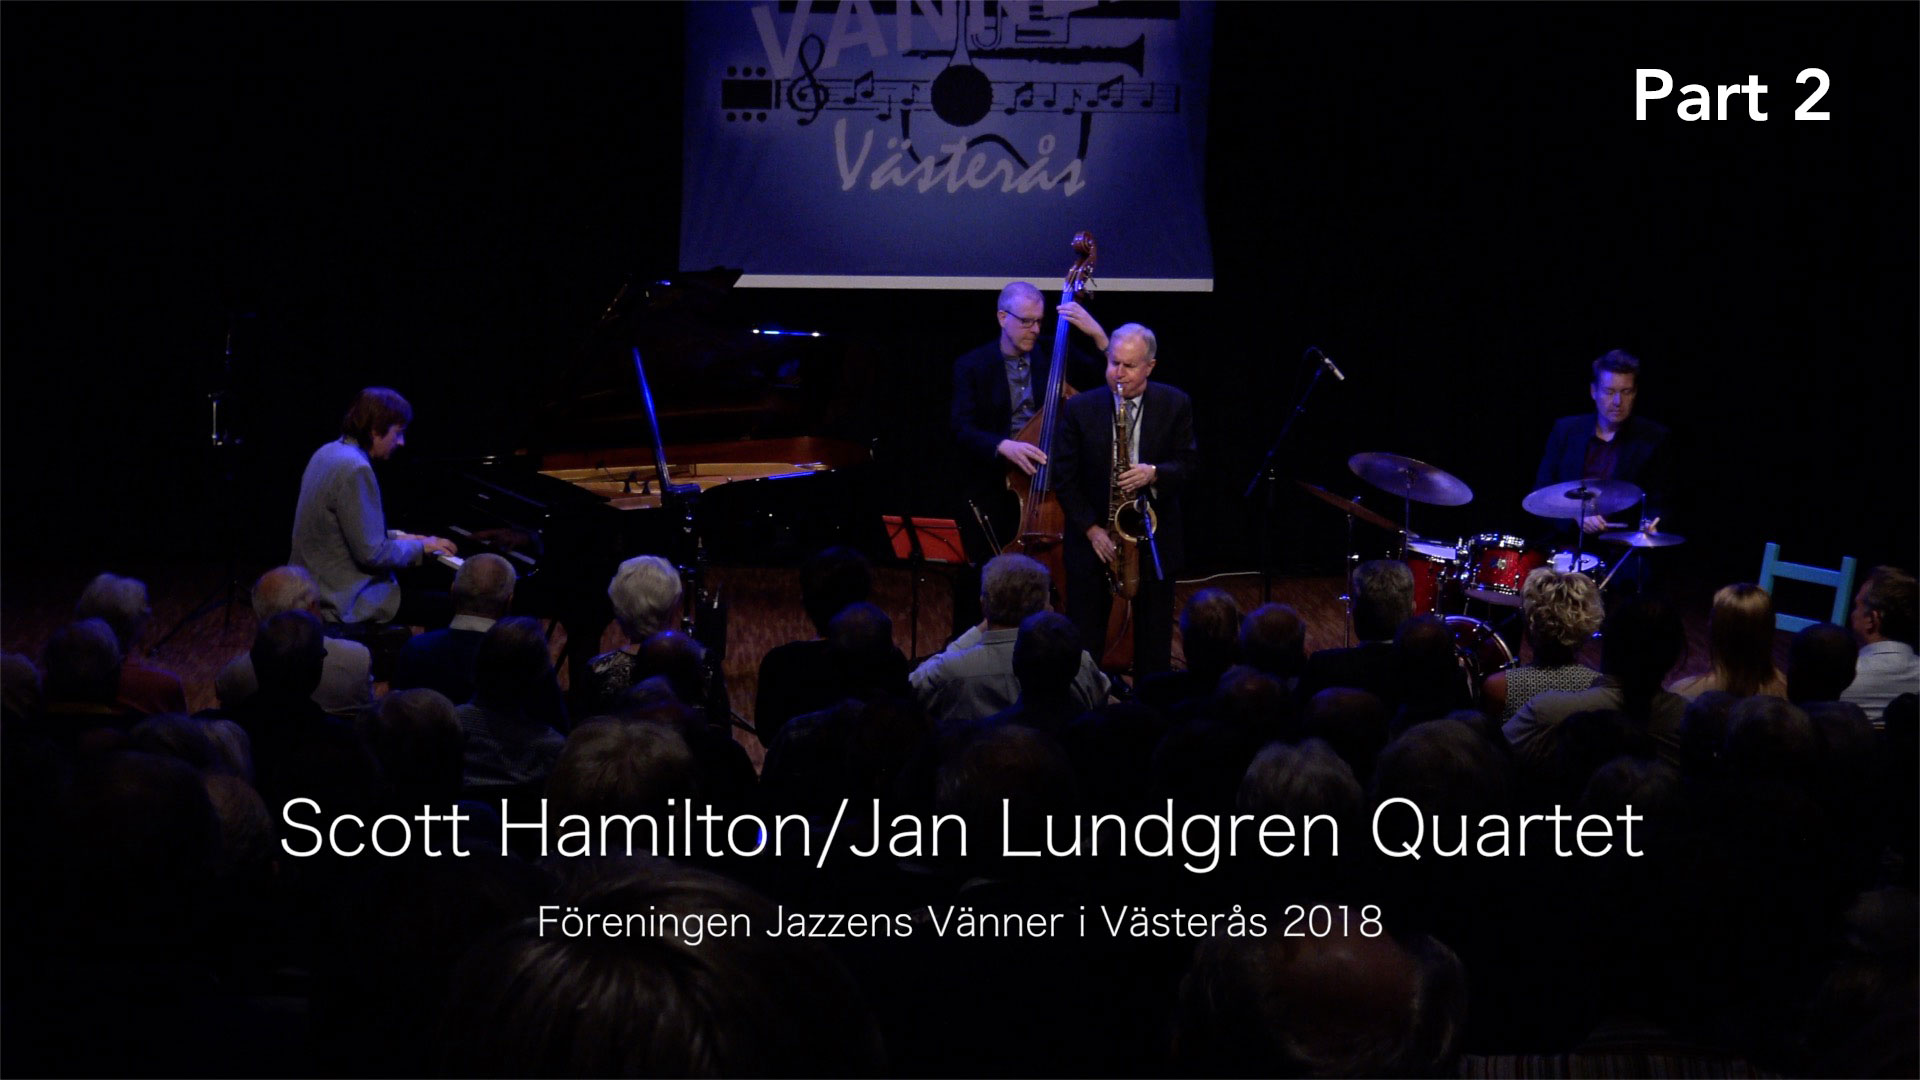 Scott Hamilton:Jan Lundgren Quartet